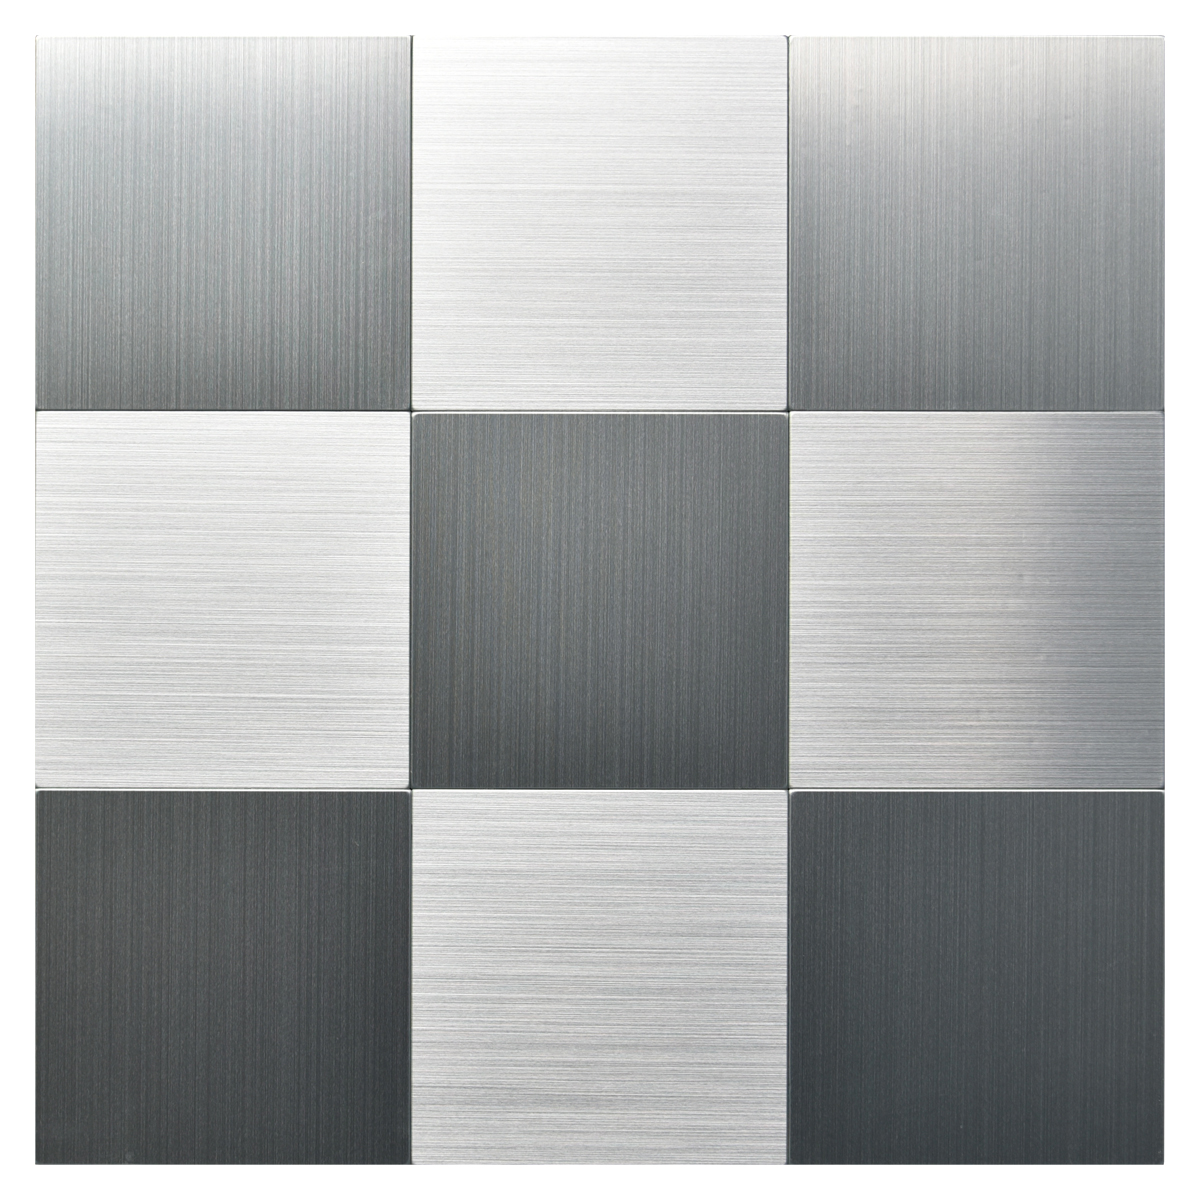 Peel and Stick Metal Backsplash Tile, Brushed Stainless Steel in Square 10 Tiles 12